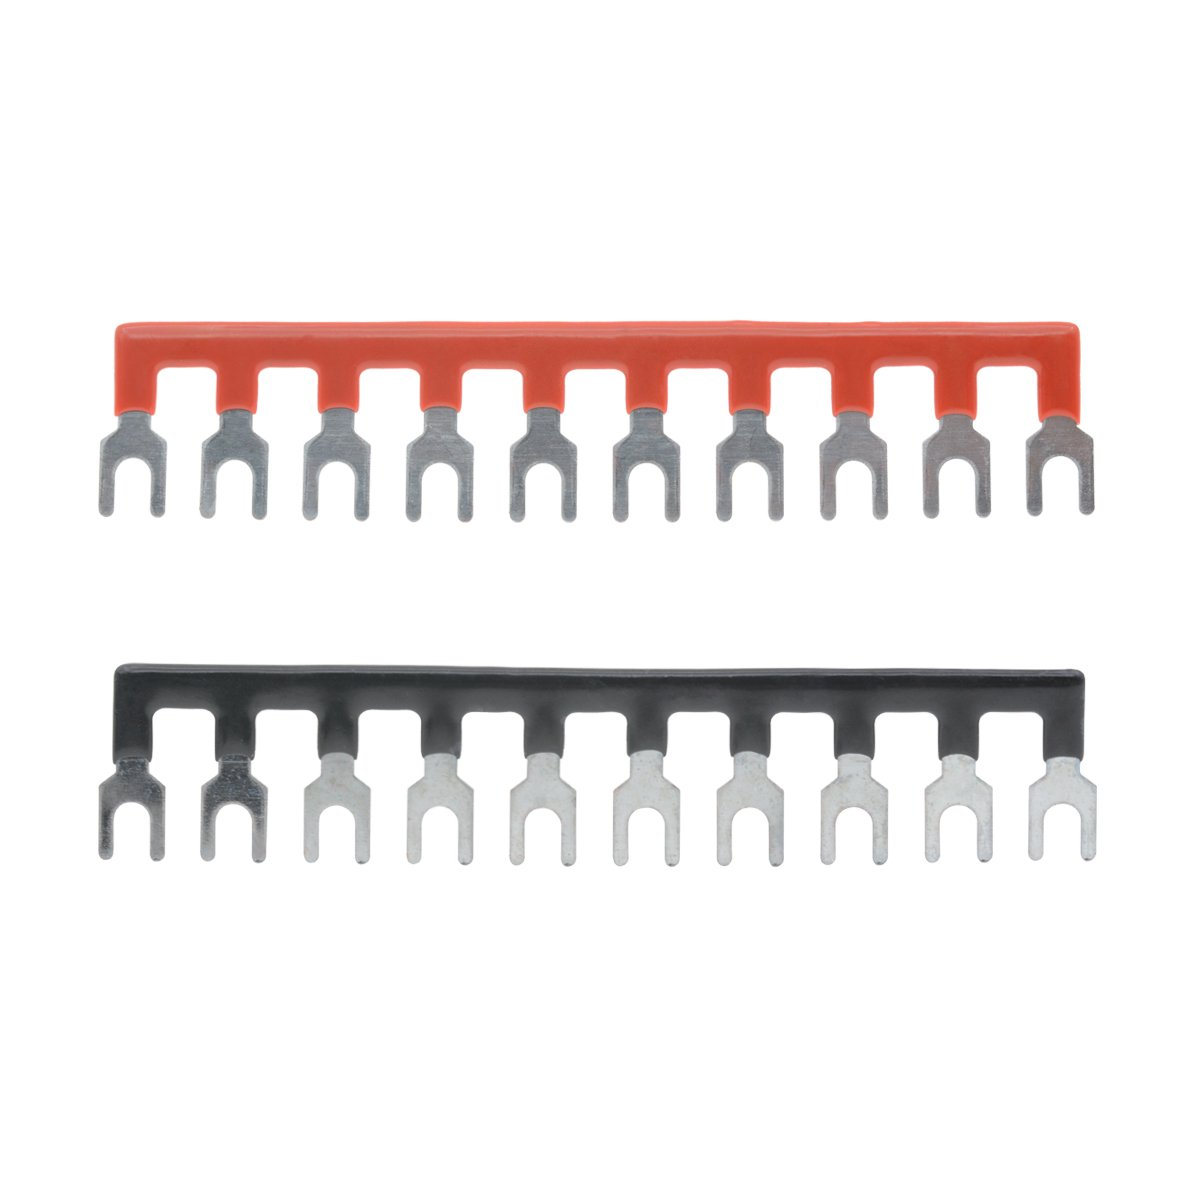 Black Red Fork Type Jumper Strip YXQ 600V 25A 3 Positions Double Row Screw Terminal Barrier Strip Block and 25A 3 Positions Pre-Insulated 5+5